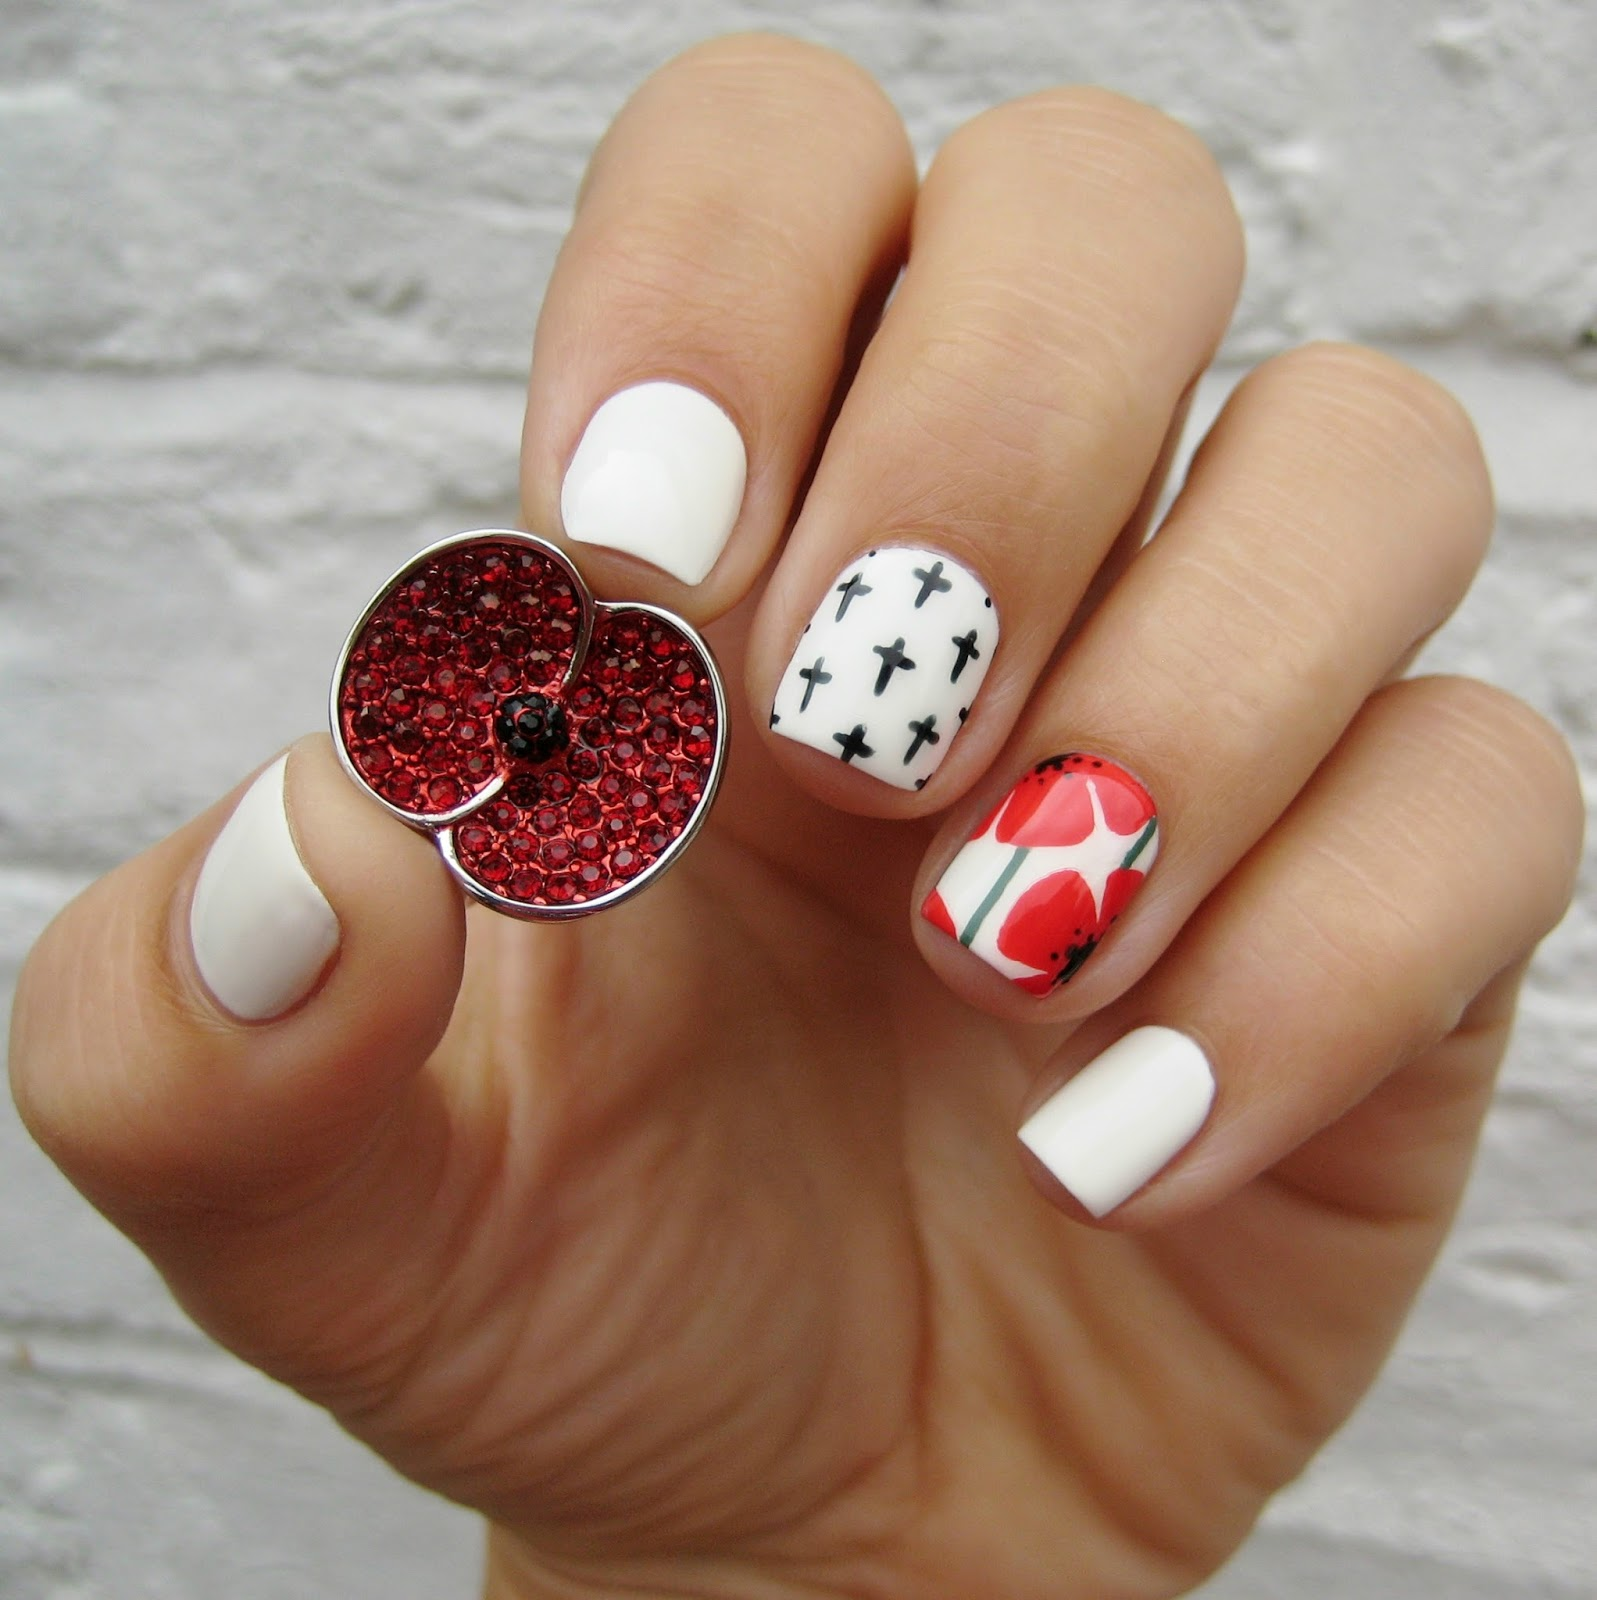 Dahlia Nails: The Poppy Collection